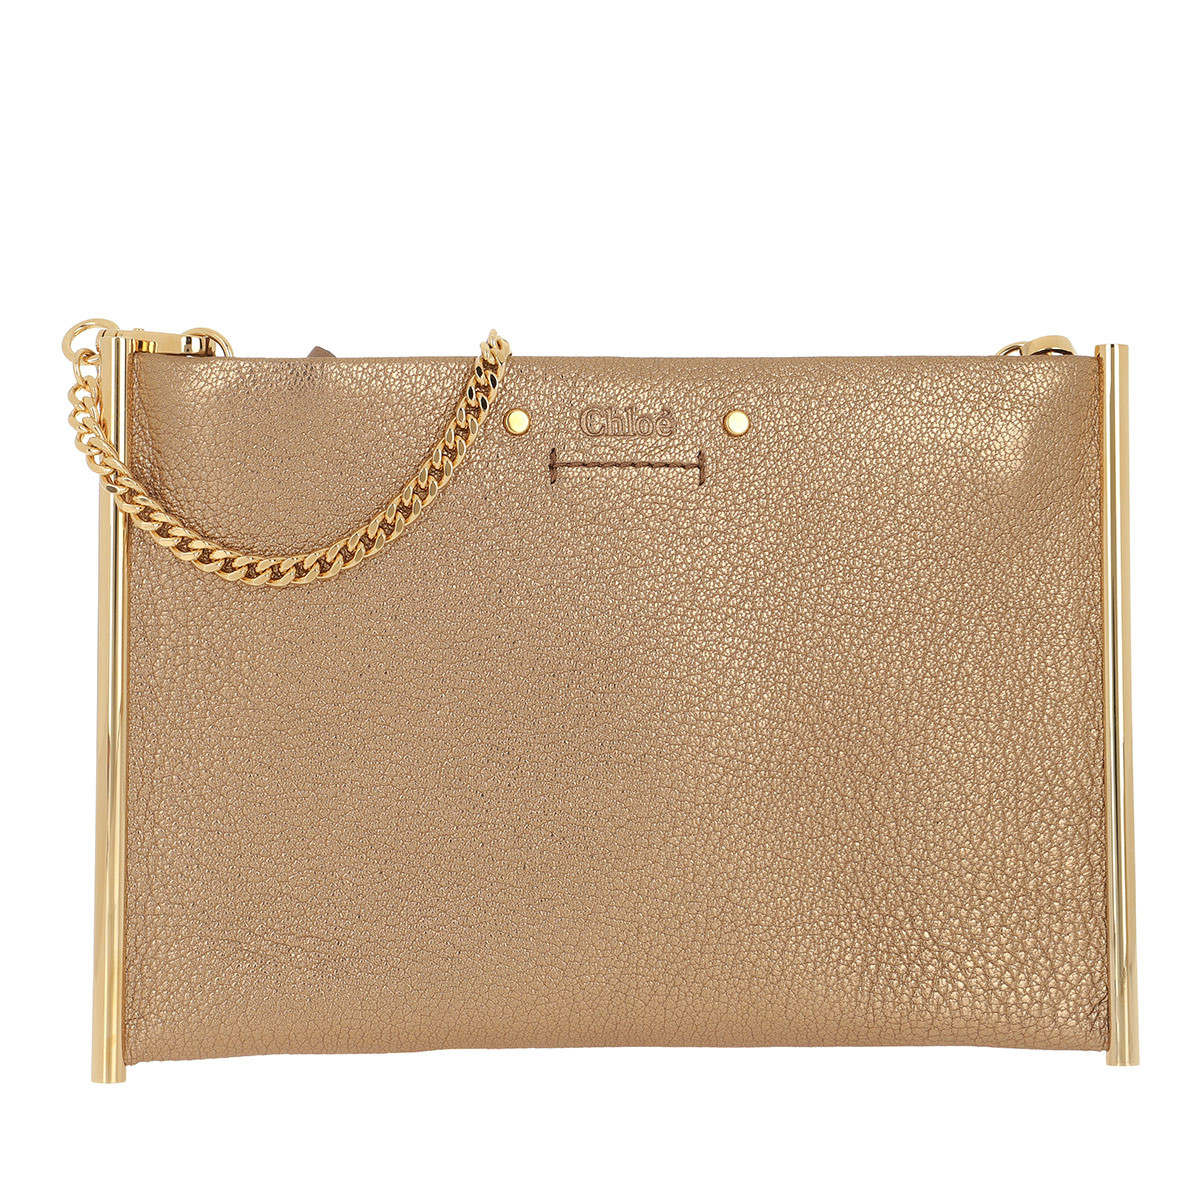 Chloé Umhängetasche - Roy Mini Clutch Leather Gold - in gold - für Damen